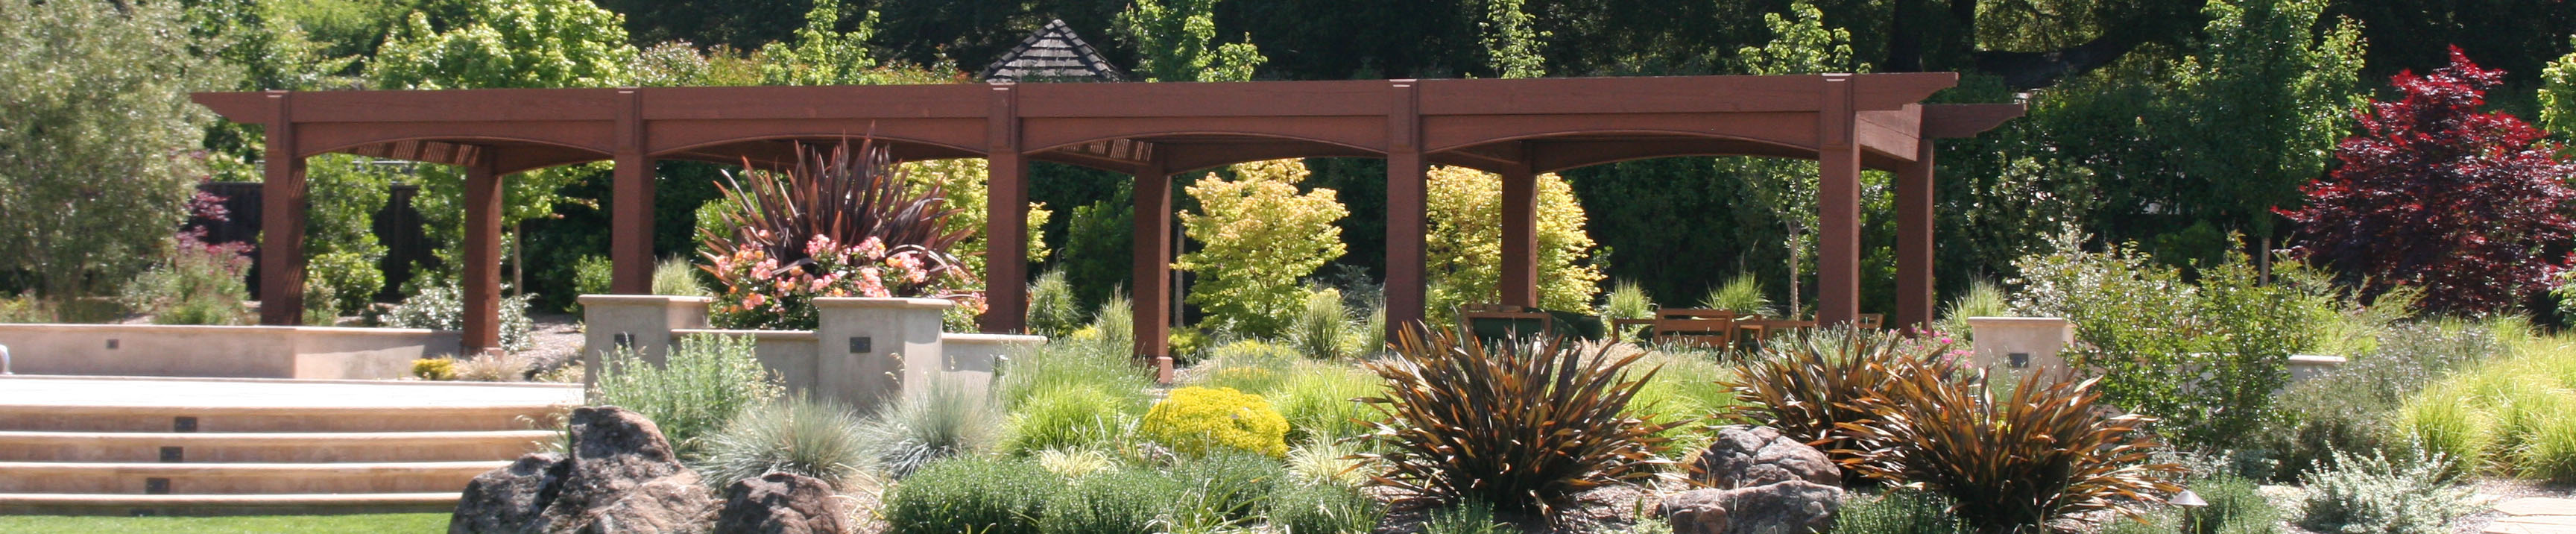 Jolee Horne Landscape Design | Welcome | Garden Design For San Francisco  Peninsula Area